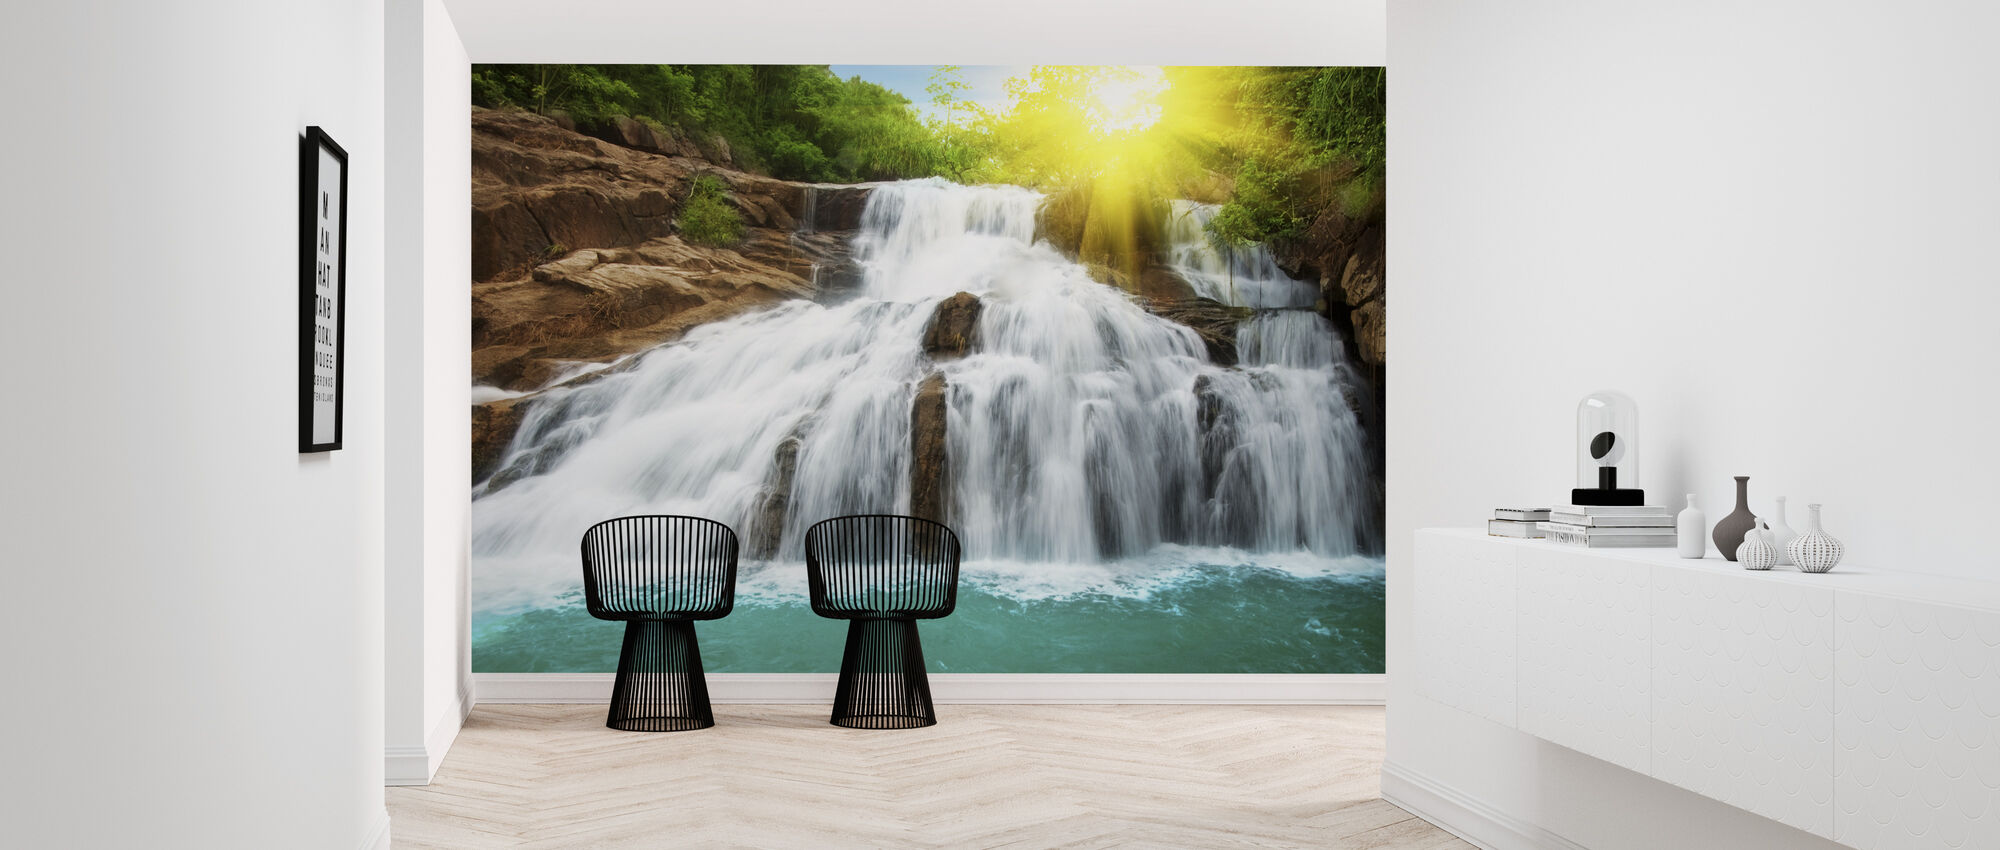 Waterfall in Rain Forest and Sunlight - Wallpaper - Hallway